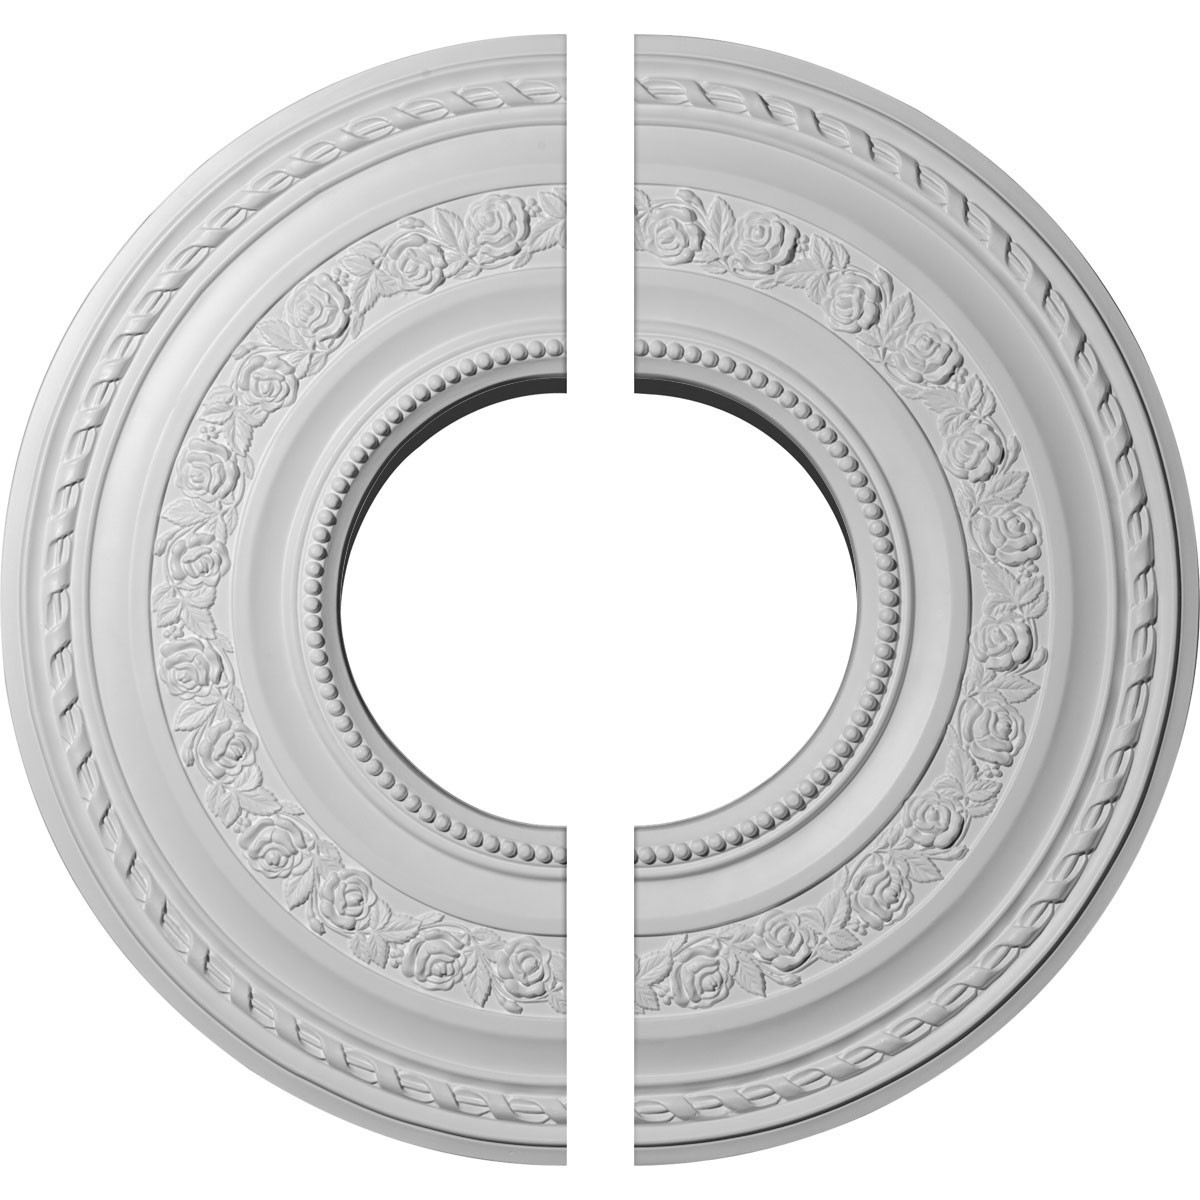 """EM-CM29AT2 - 29 3/8""""OD x 11 5/8""""ID x 1 1/8""""P Anthony Ceiling Medallion, Two Piece (Fits Canopies up to 11 5/8"""")"""